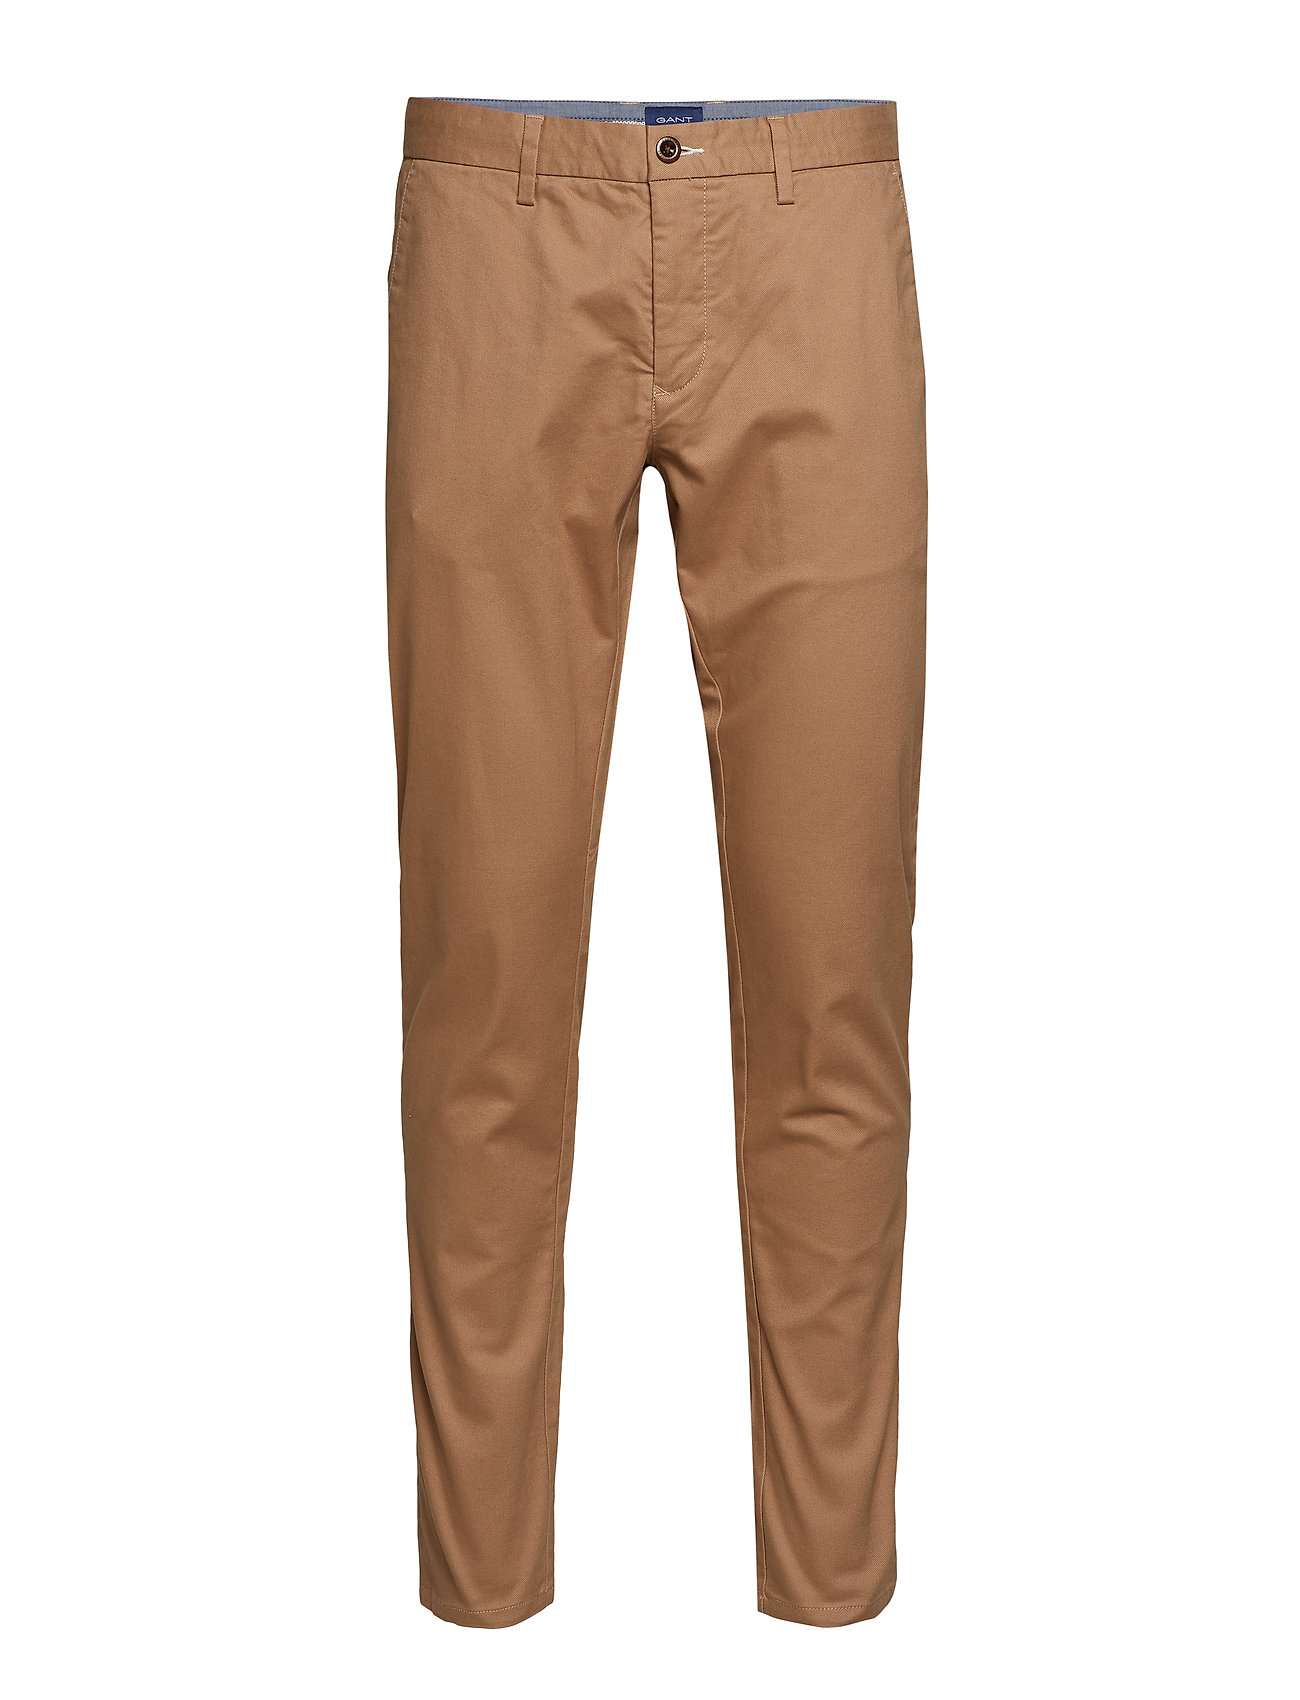 GANT SLIM TECH PREP CHINO - WARM KHAKI